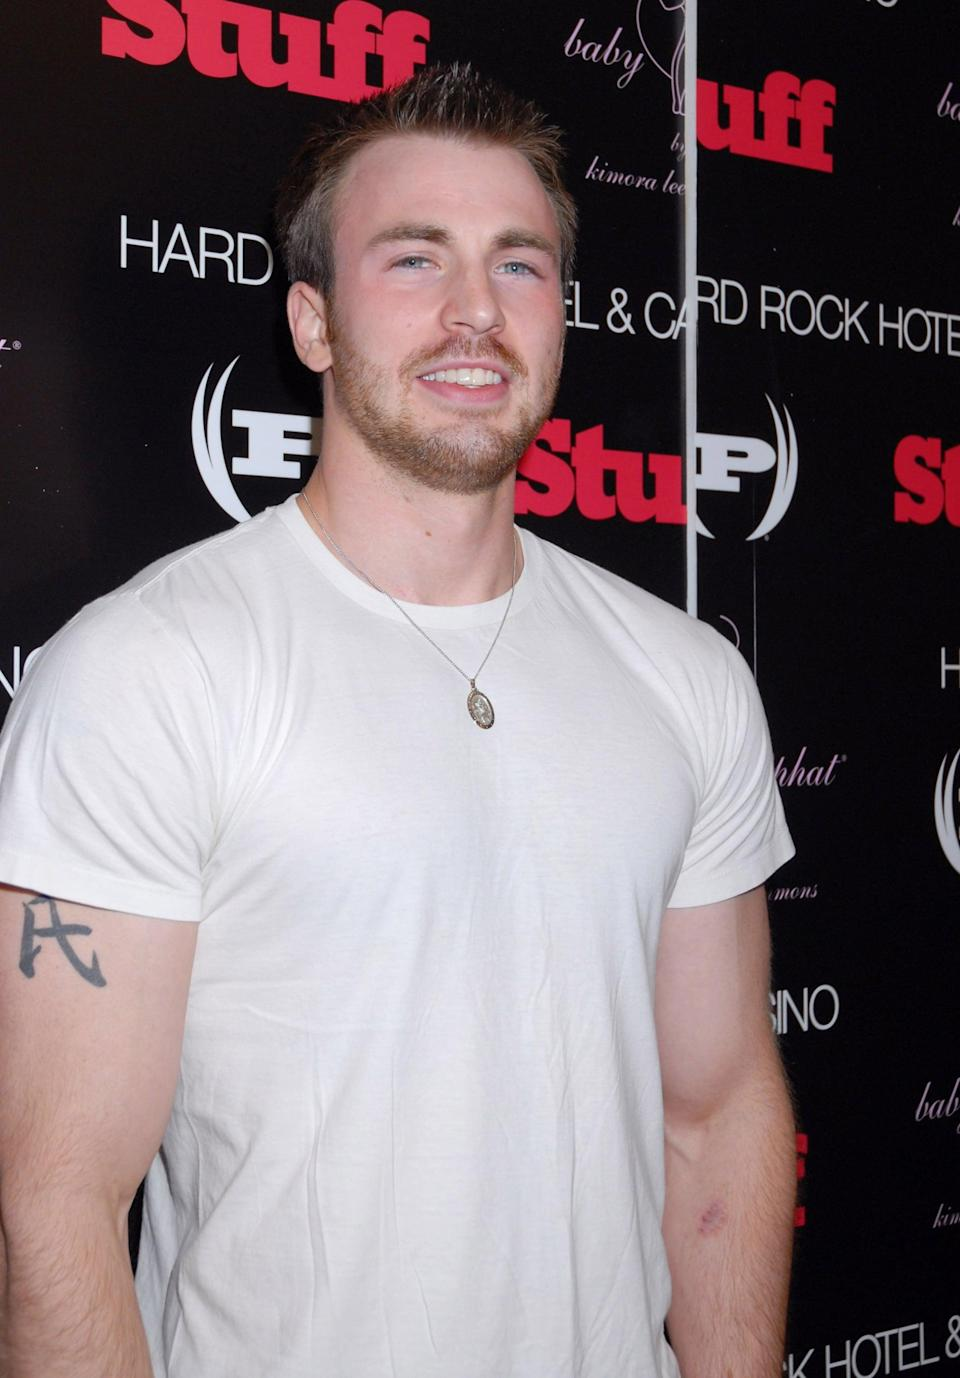 "<p>On his right bicep, <a href=""http://usatoday30.usatoday.com/life/people/2004-09-09-chris-evans_x.htm"" class=""link rapid-noclick-resp"" rel=""nofollow noopener"" target=""_blank"" data-ylk=""slk:Evans used to have a Chinese character"">Evans used to have a Chinese character</a>, though he has since had the piece removed (probably because it was often visible when he wore T-shirts). According to his 2004 interview with <strong>USA Today</strong>, the symbol translated to ""family."" </p>"